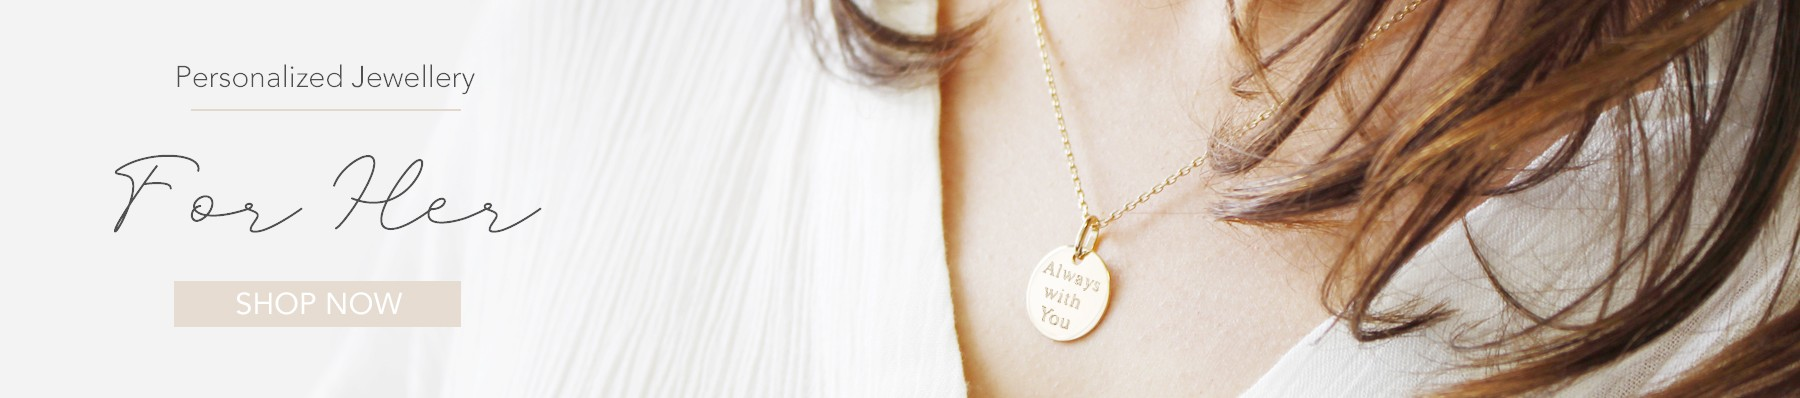 Personalized Jewellery for women